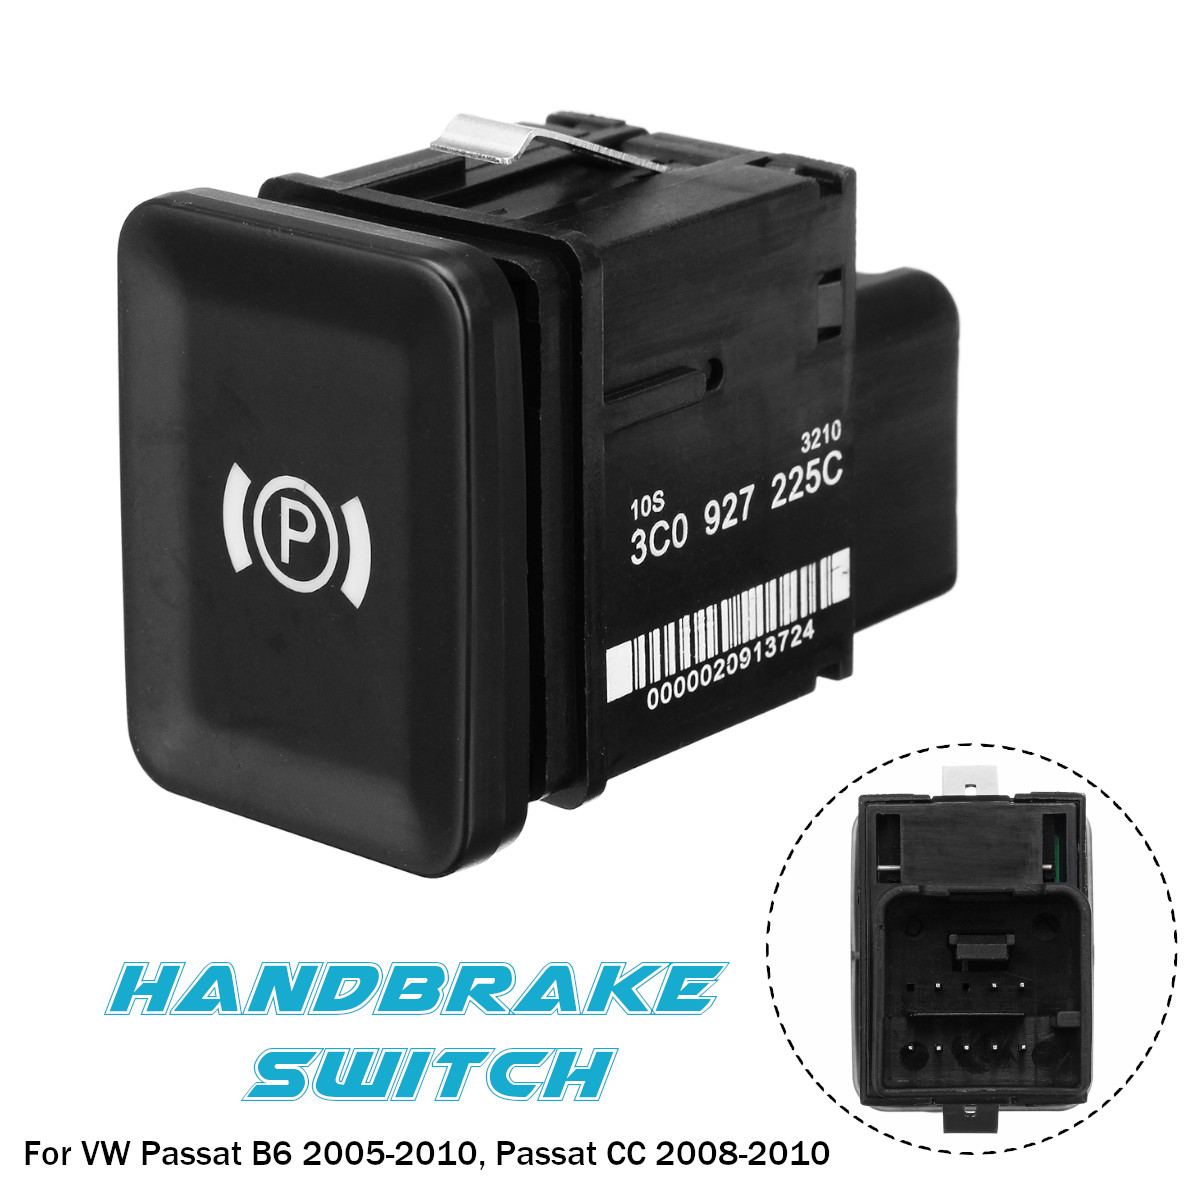 Electronic Handbrake Brake Parking Car Switch 3C0927225C for VW Passat B6 C6 CC